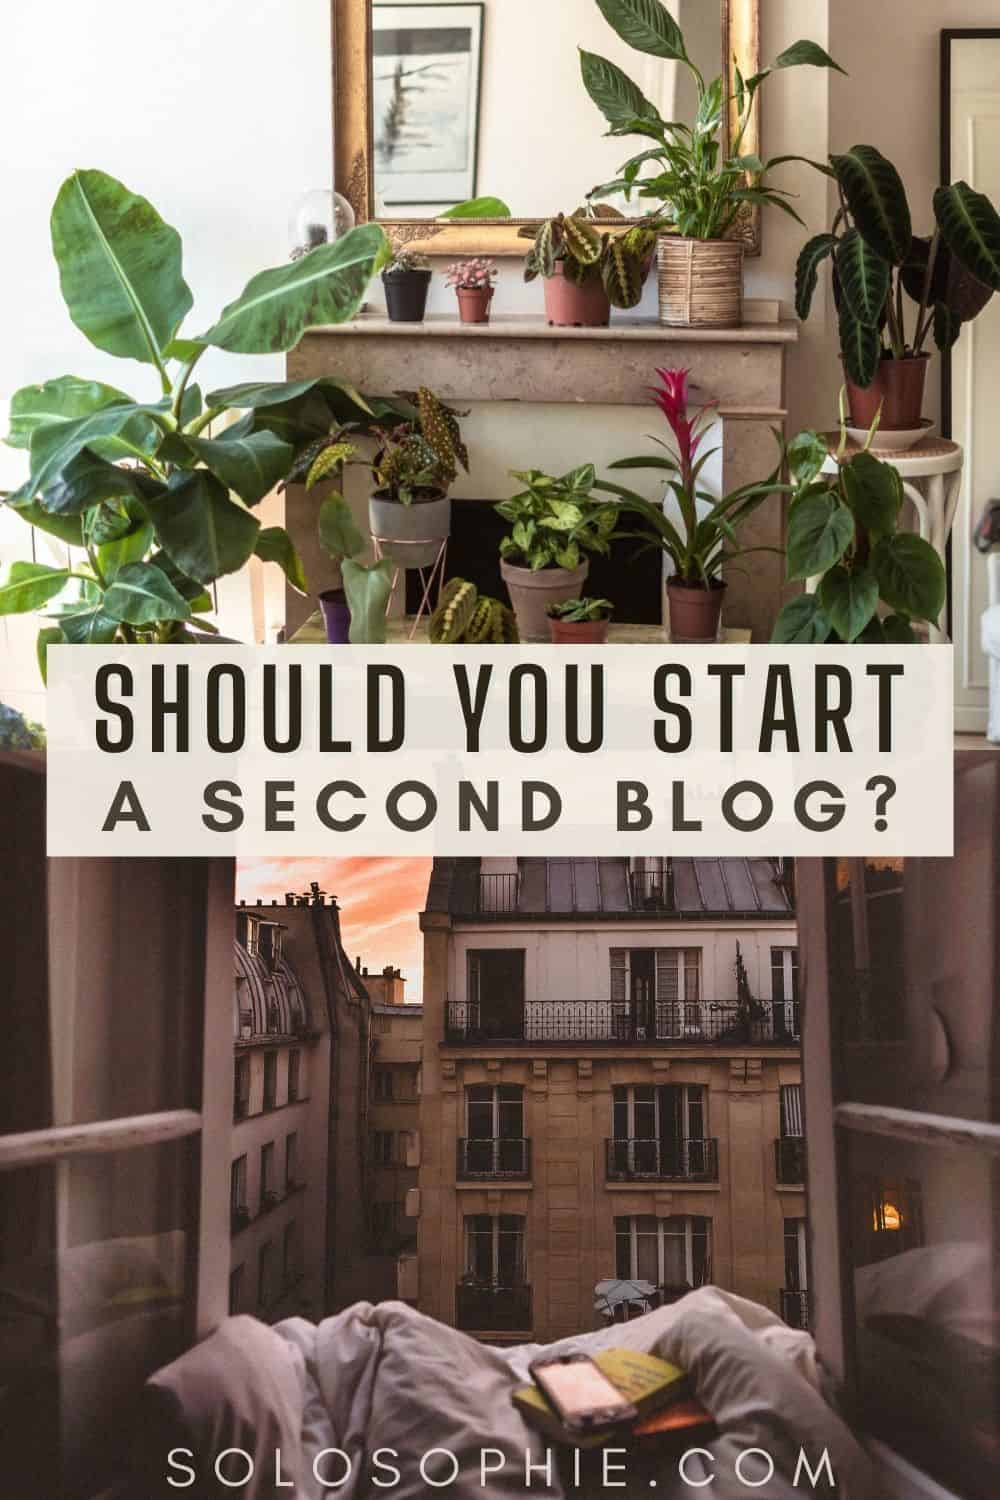 Best blogging business tips/ Starting A Second Blog: What You Need to Know